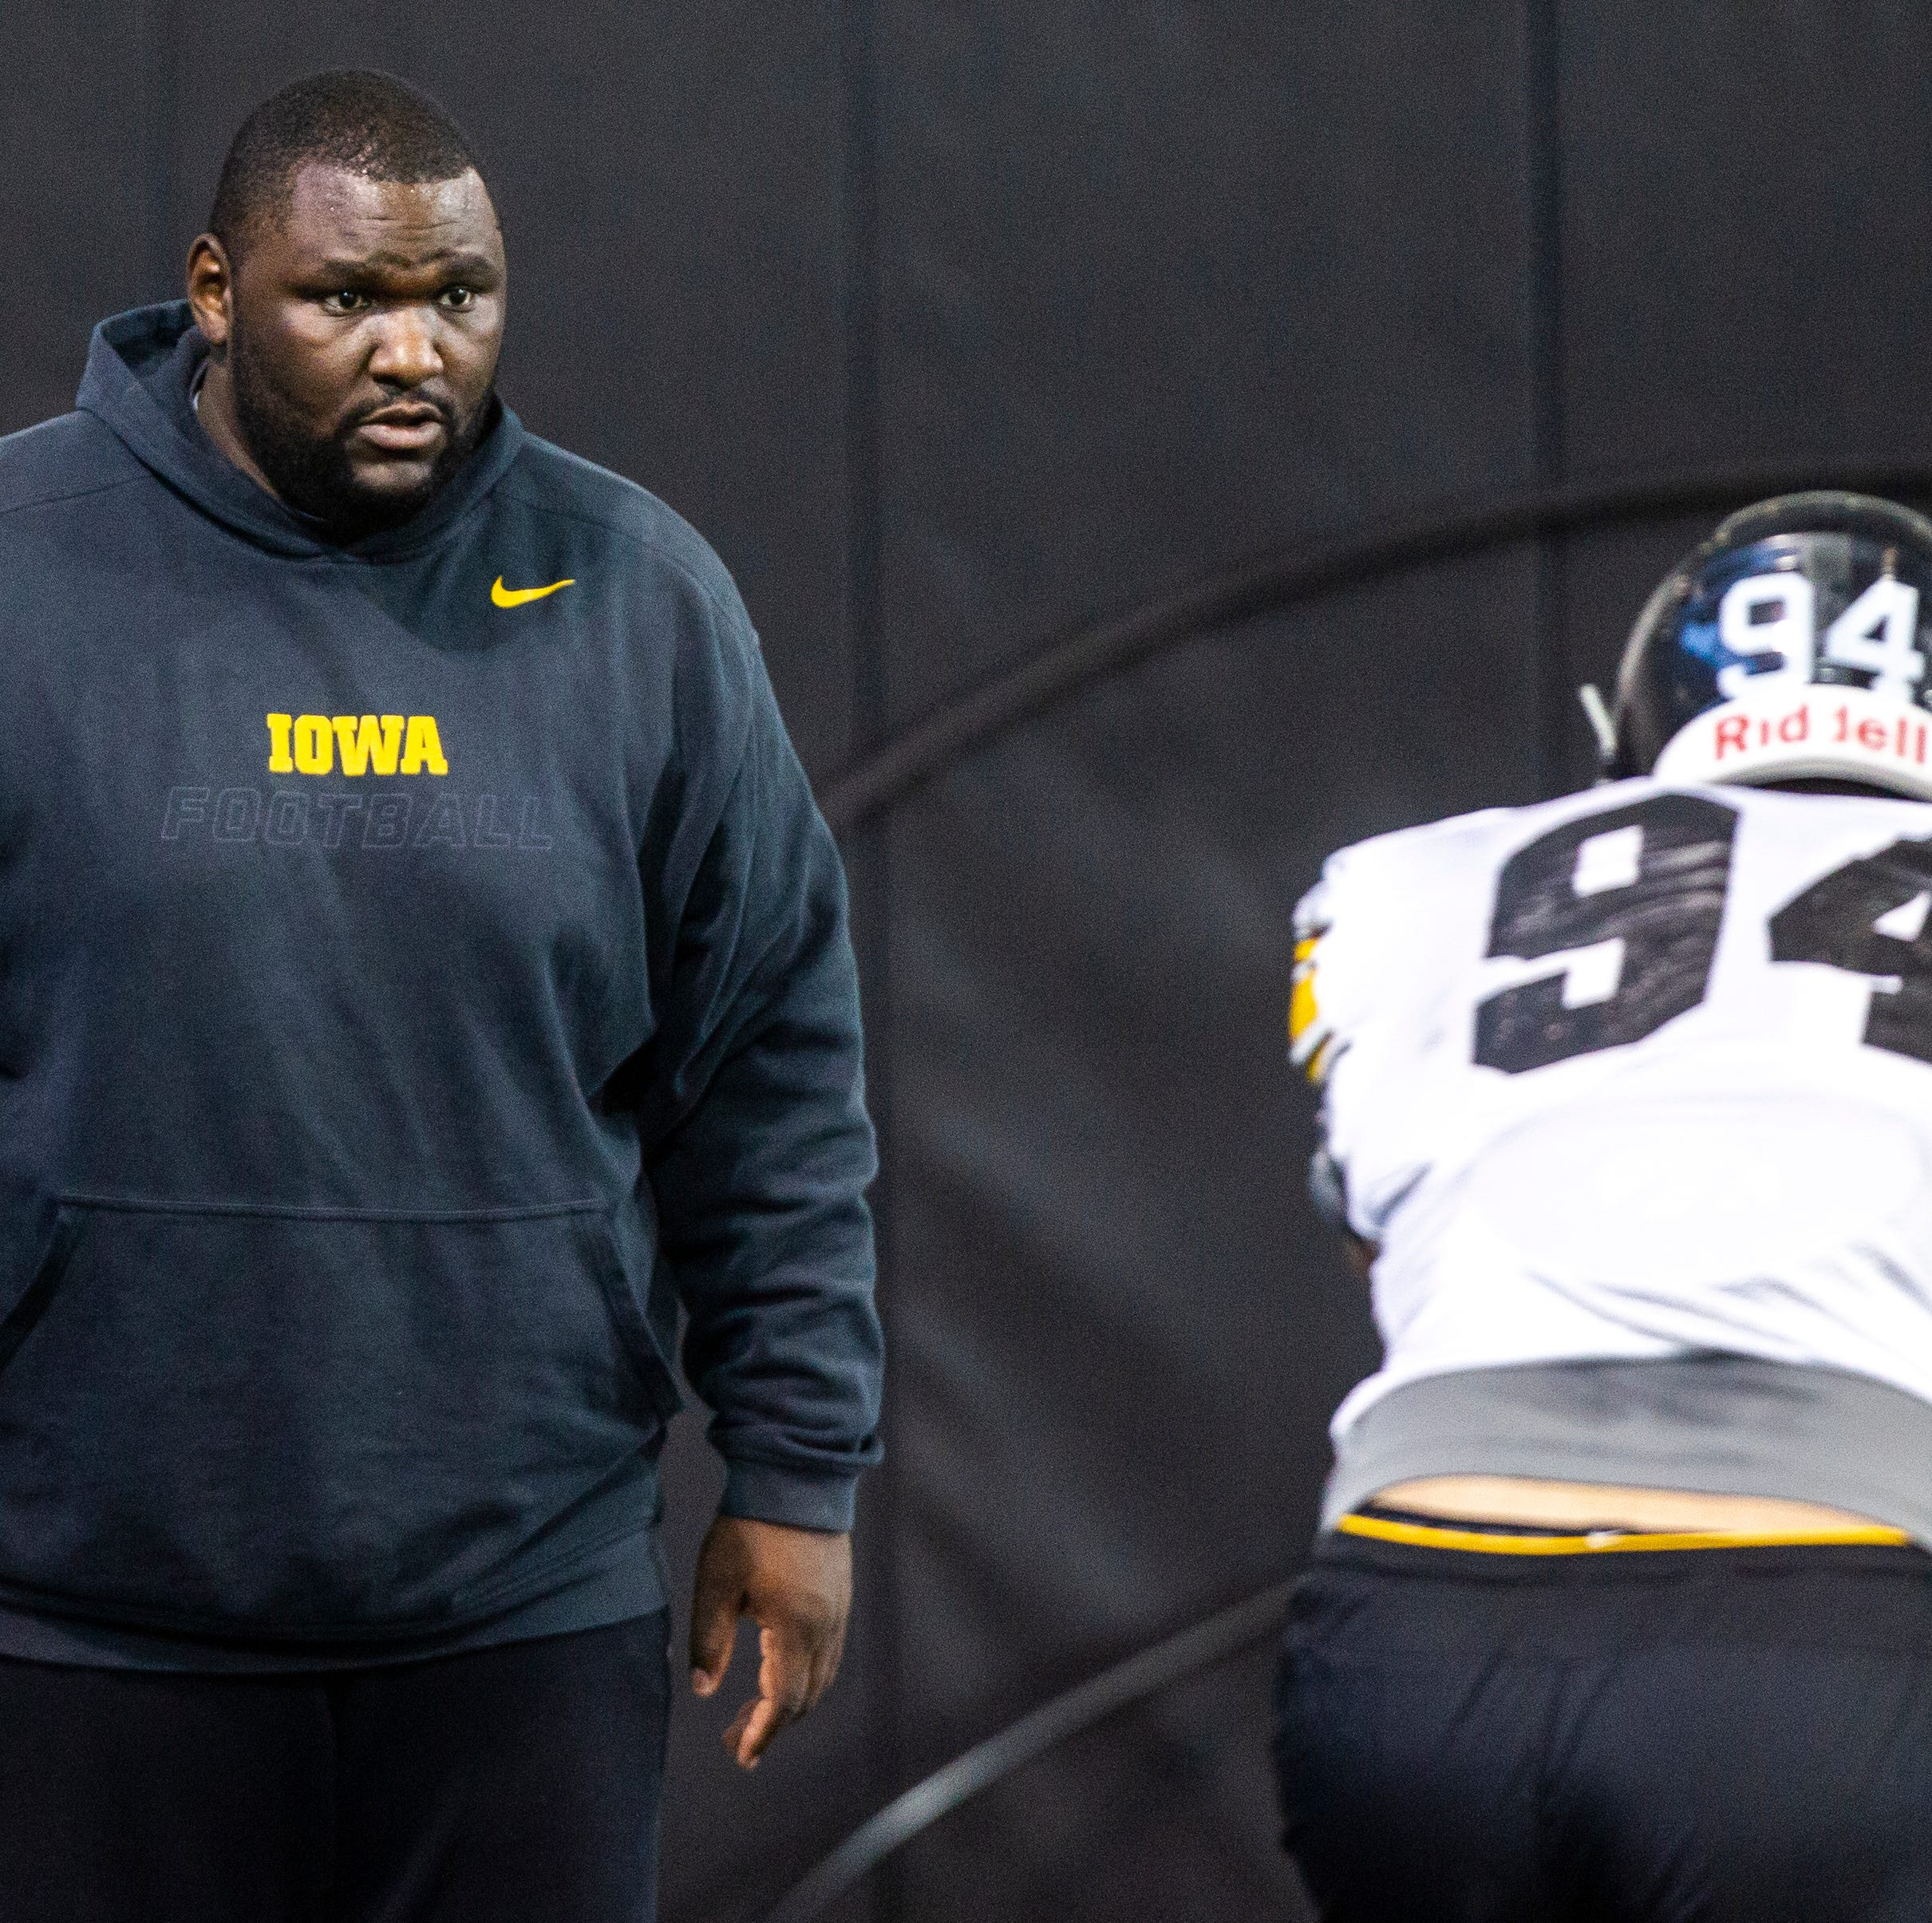 New Iowa defensive line coach Kelvin Bell has message that resonates with his players